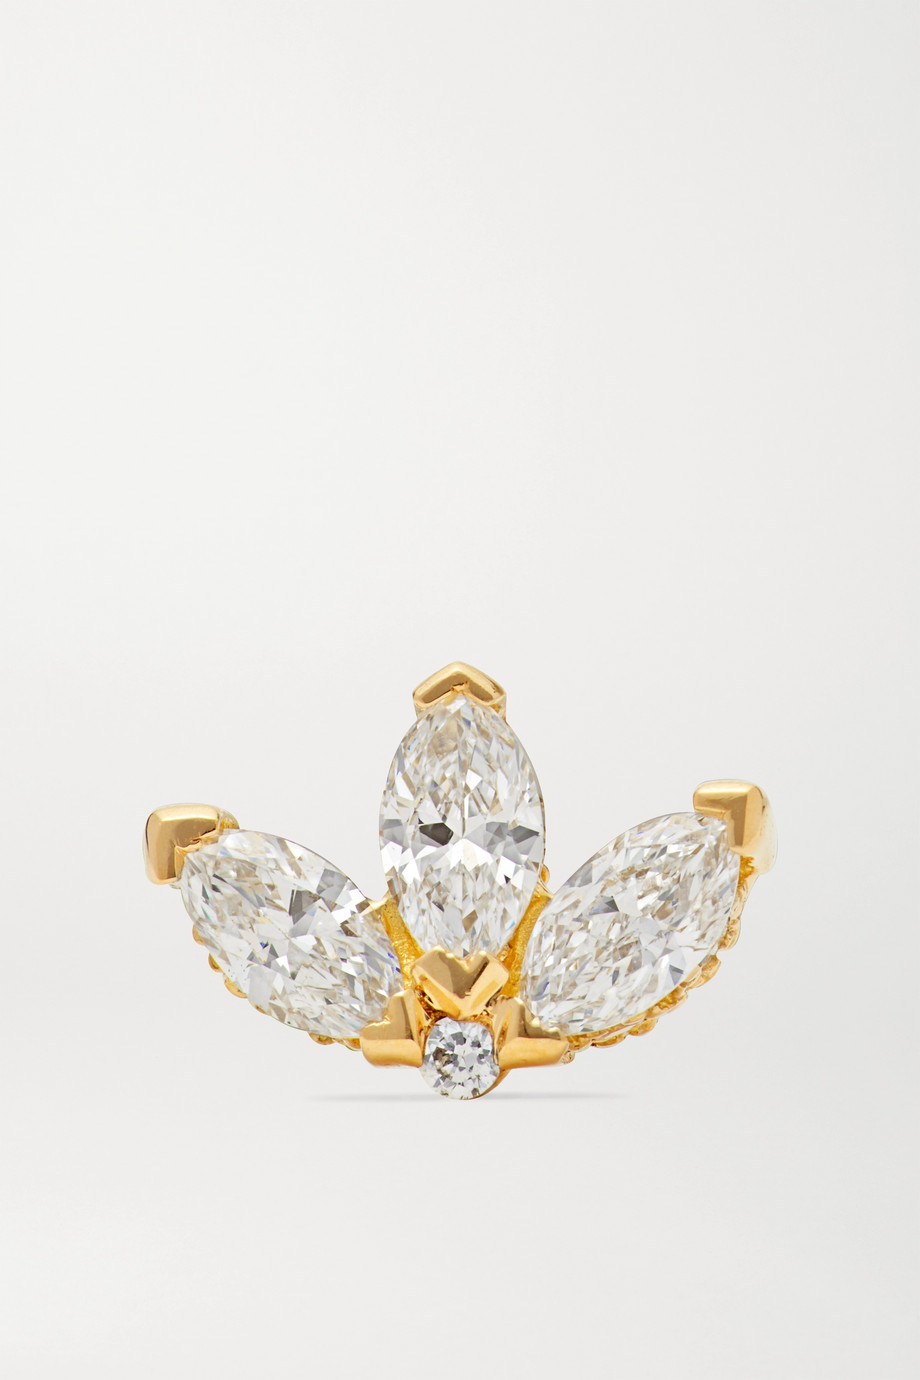 MARIA TASH Boucle d'oreille en or 18 carats et diamants Lotus